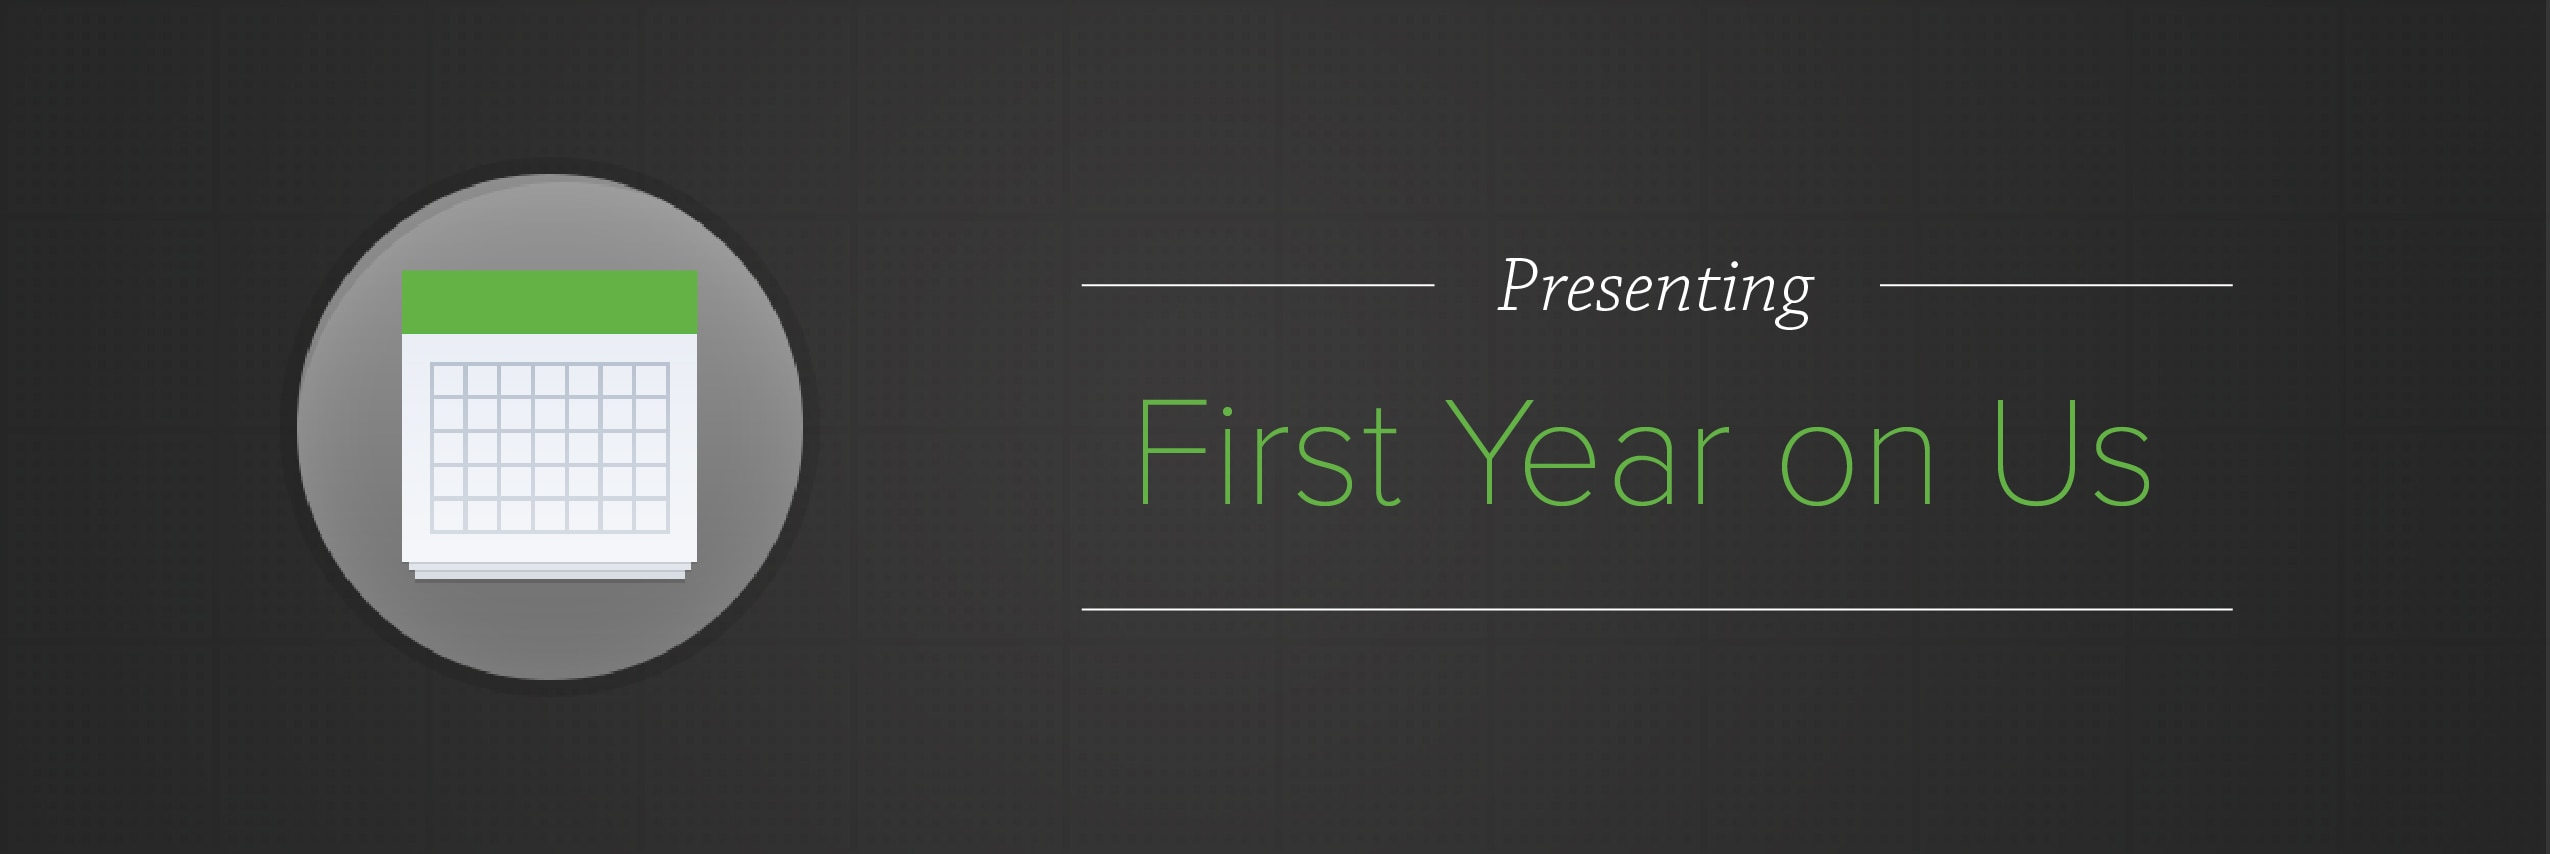 Meraki First Year on Us Banner-02